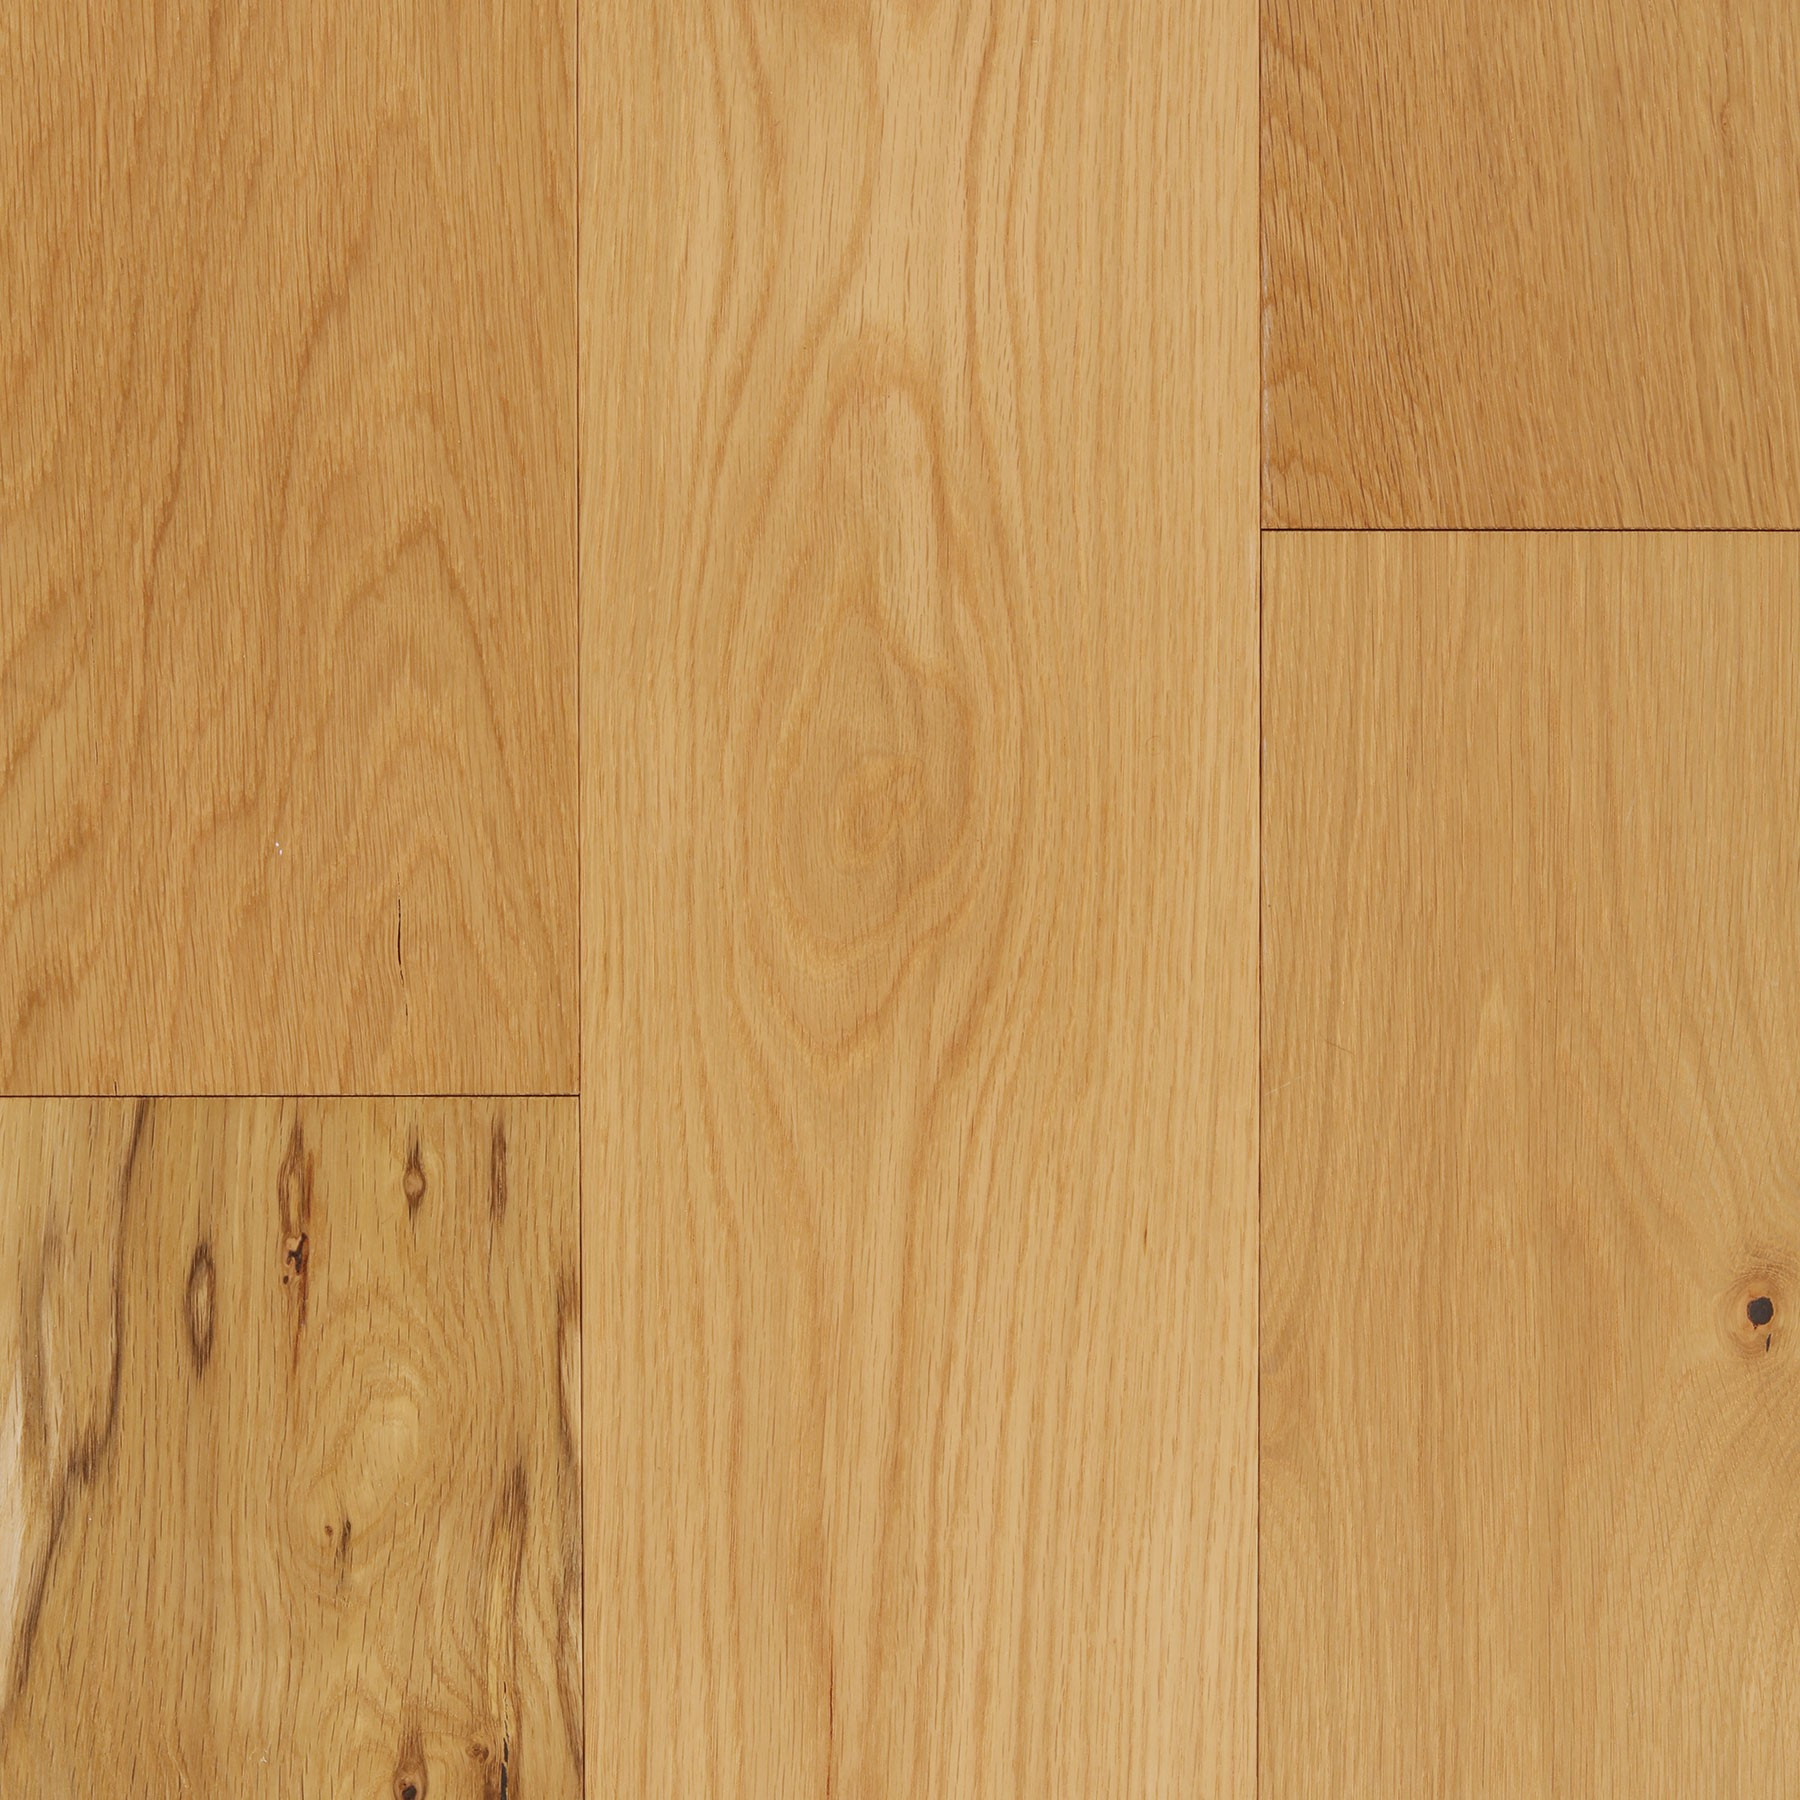 pergo hardwood flooring reviews of 19 awesome pergo vs hardwood pics dizpos com intended for pergo vs hardwood awesome oiled domestic barley etx surfaces gallery of 19 awesome pergo vs